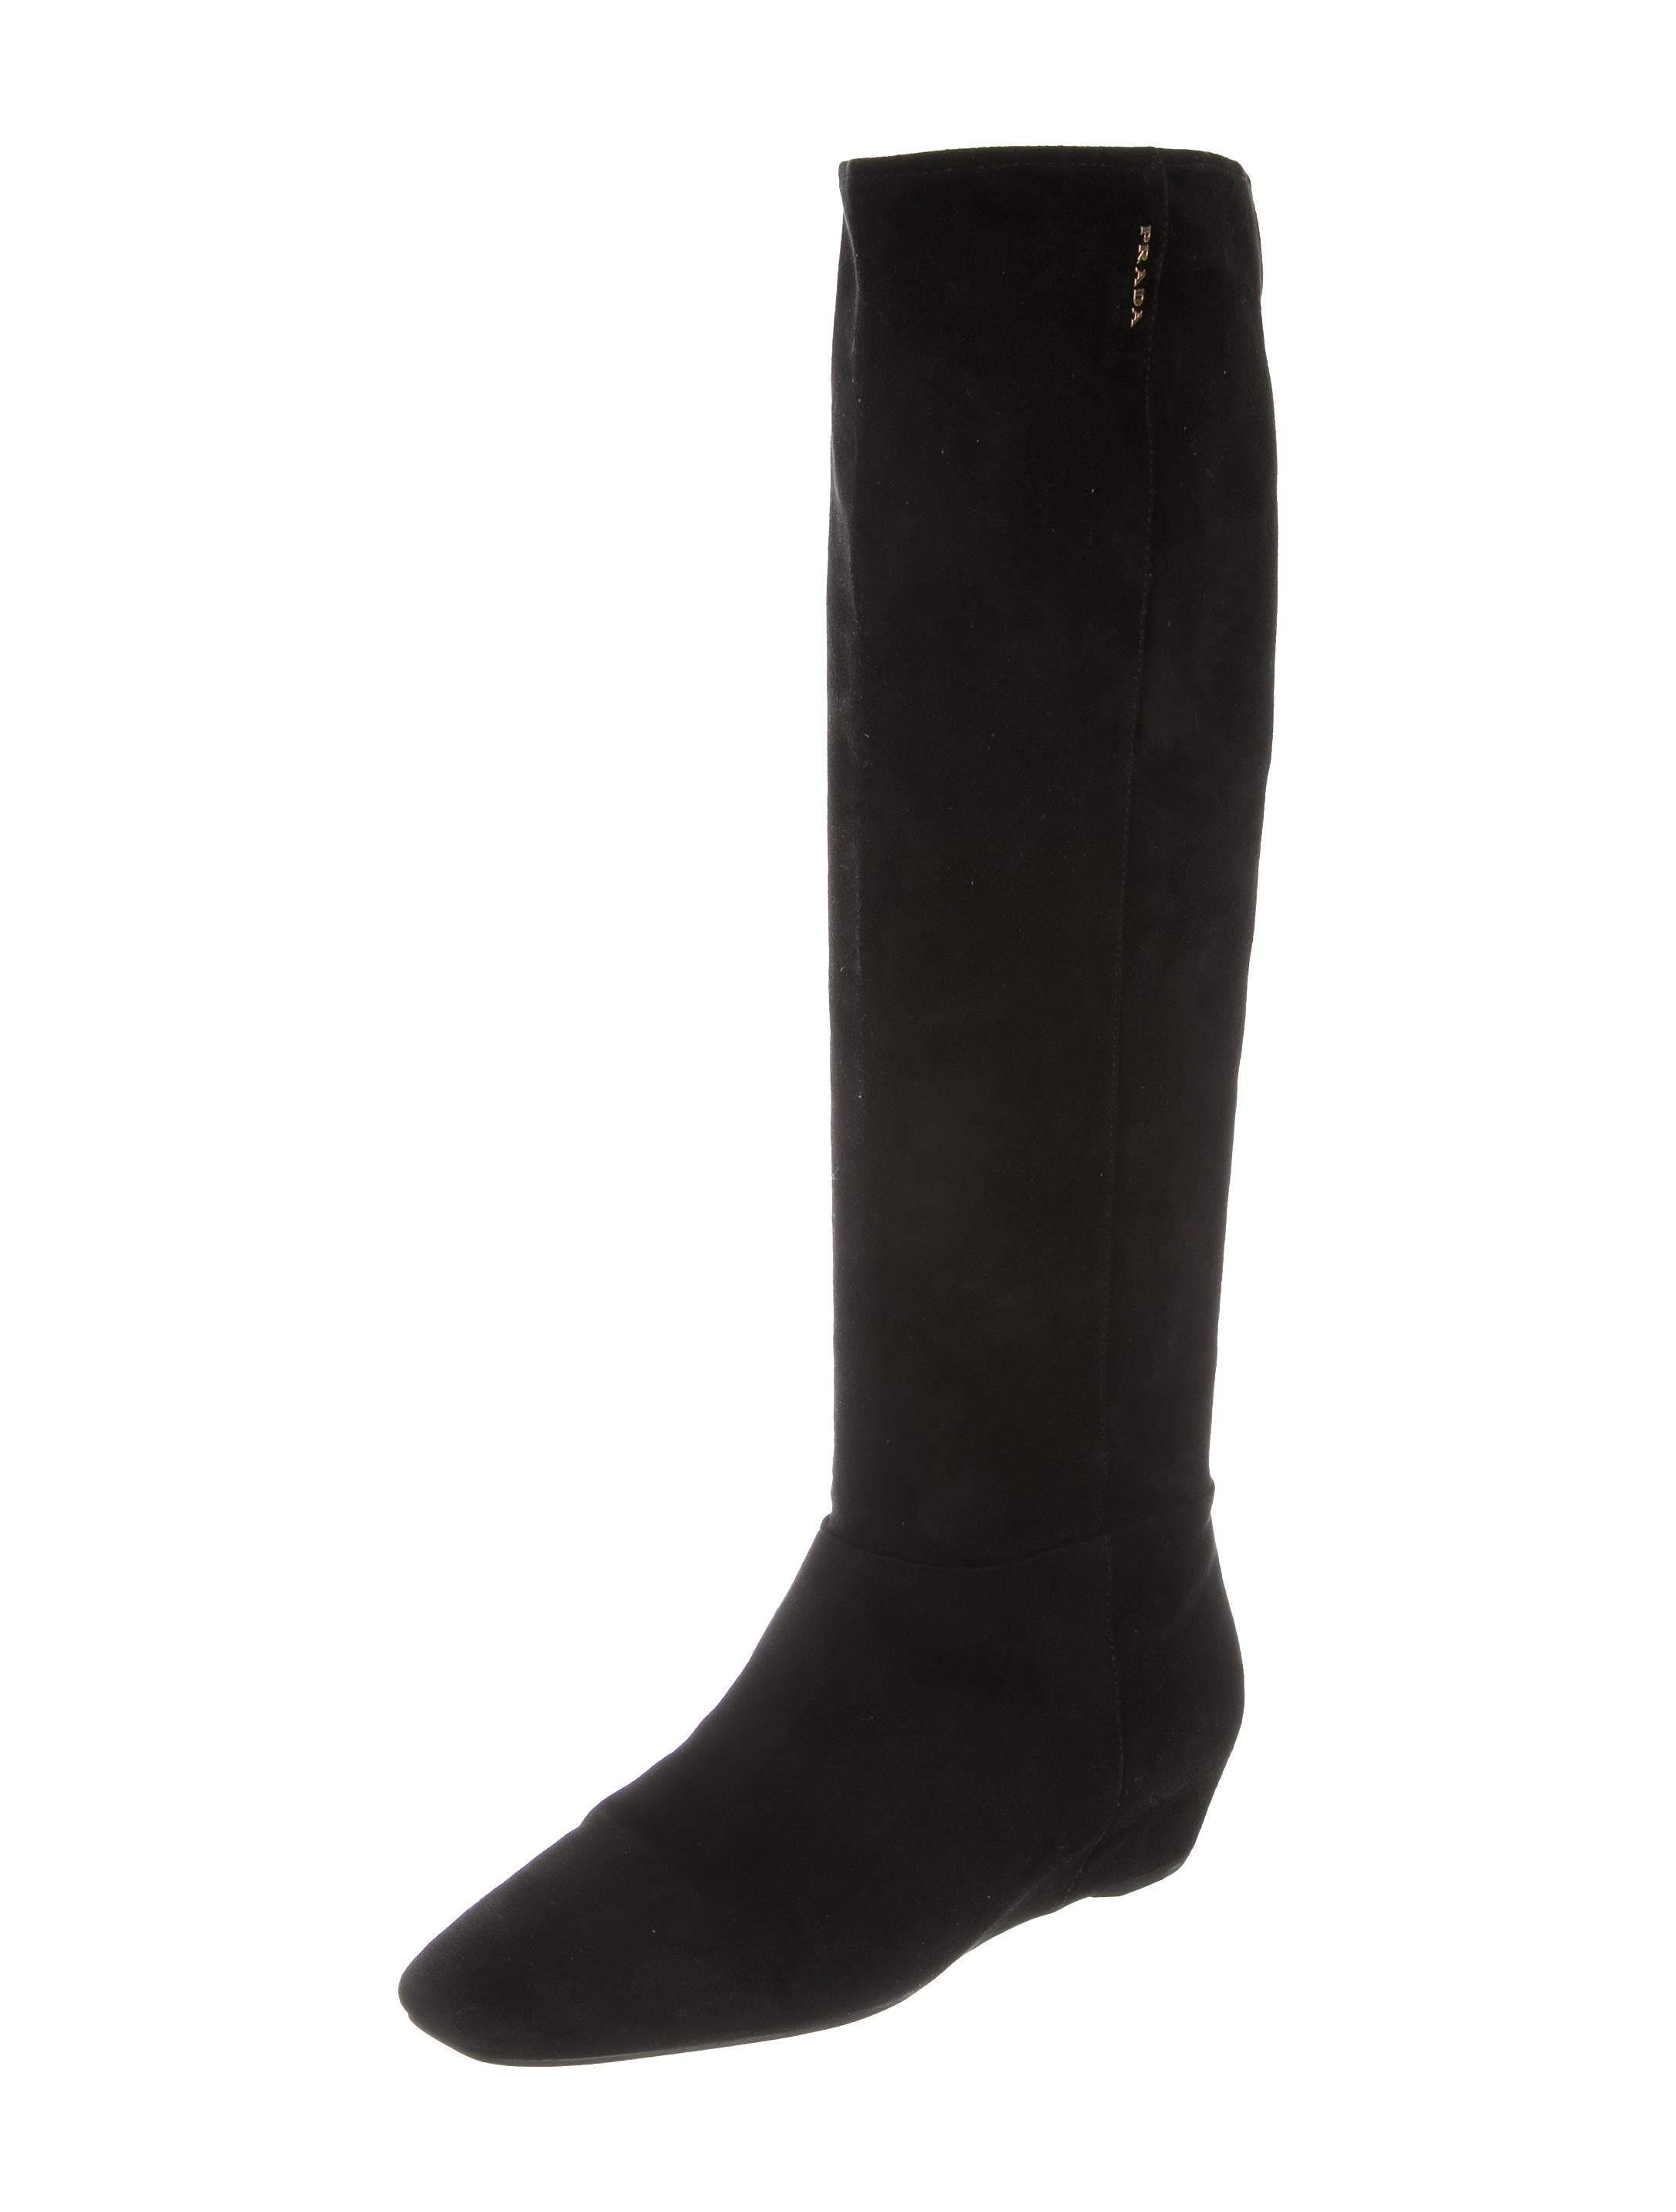 prada sport suede wedge boots shoes wpr39644 the